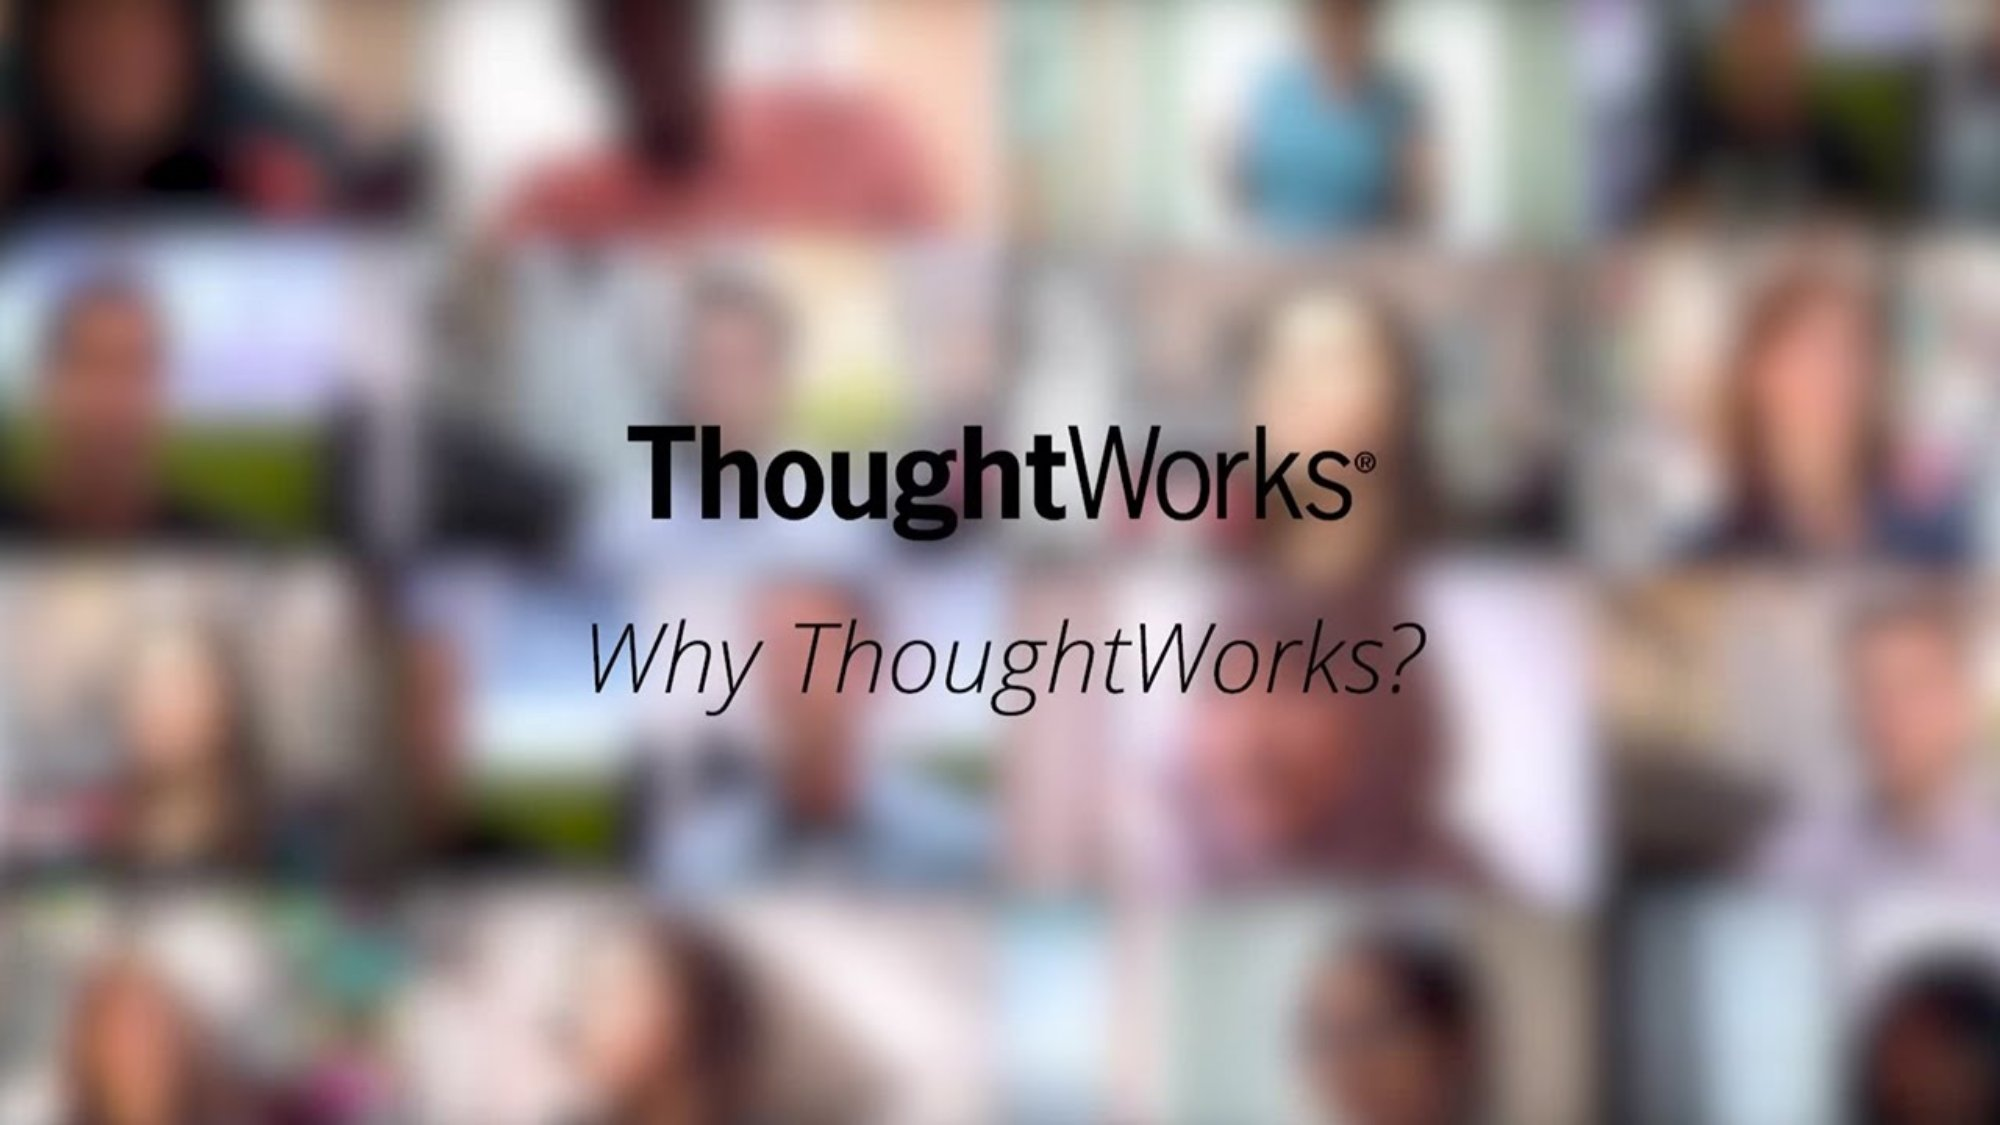 ThoughtWorks-feature-image